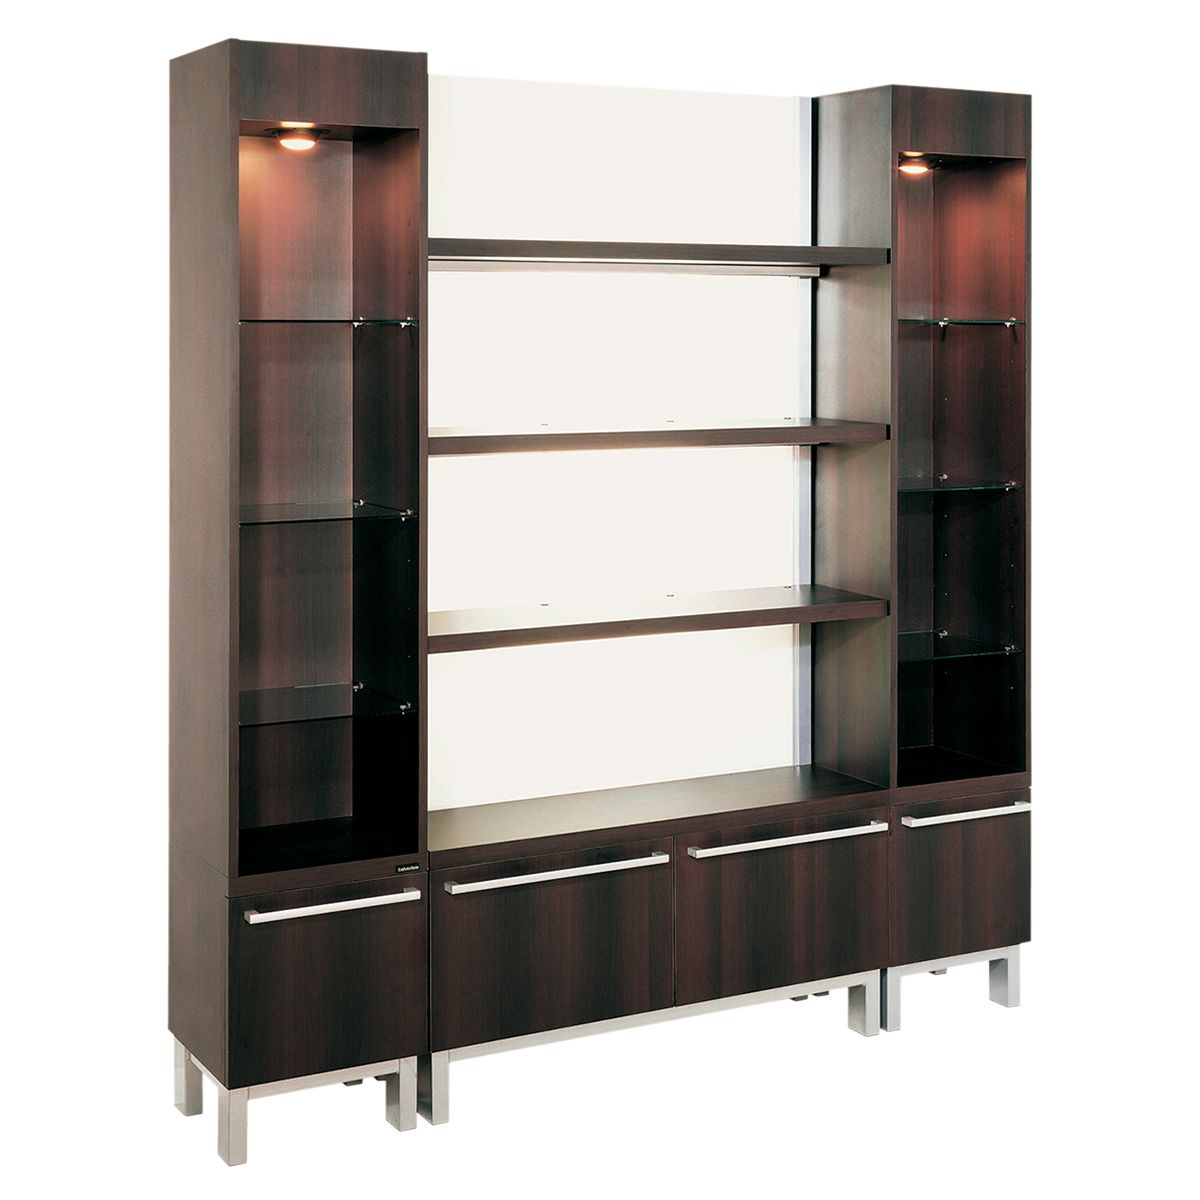 Belvedere KT182 KT183 Kallista Retail Display Cases Glass